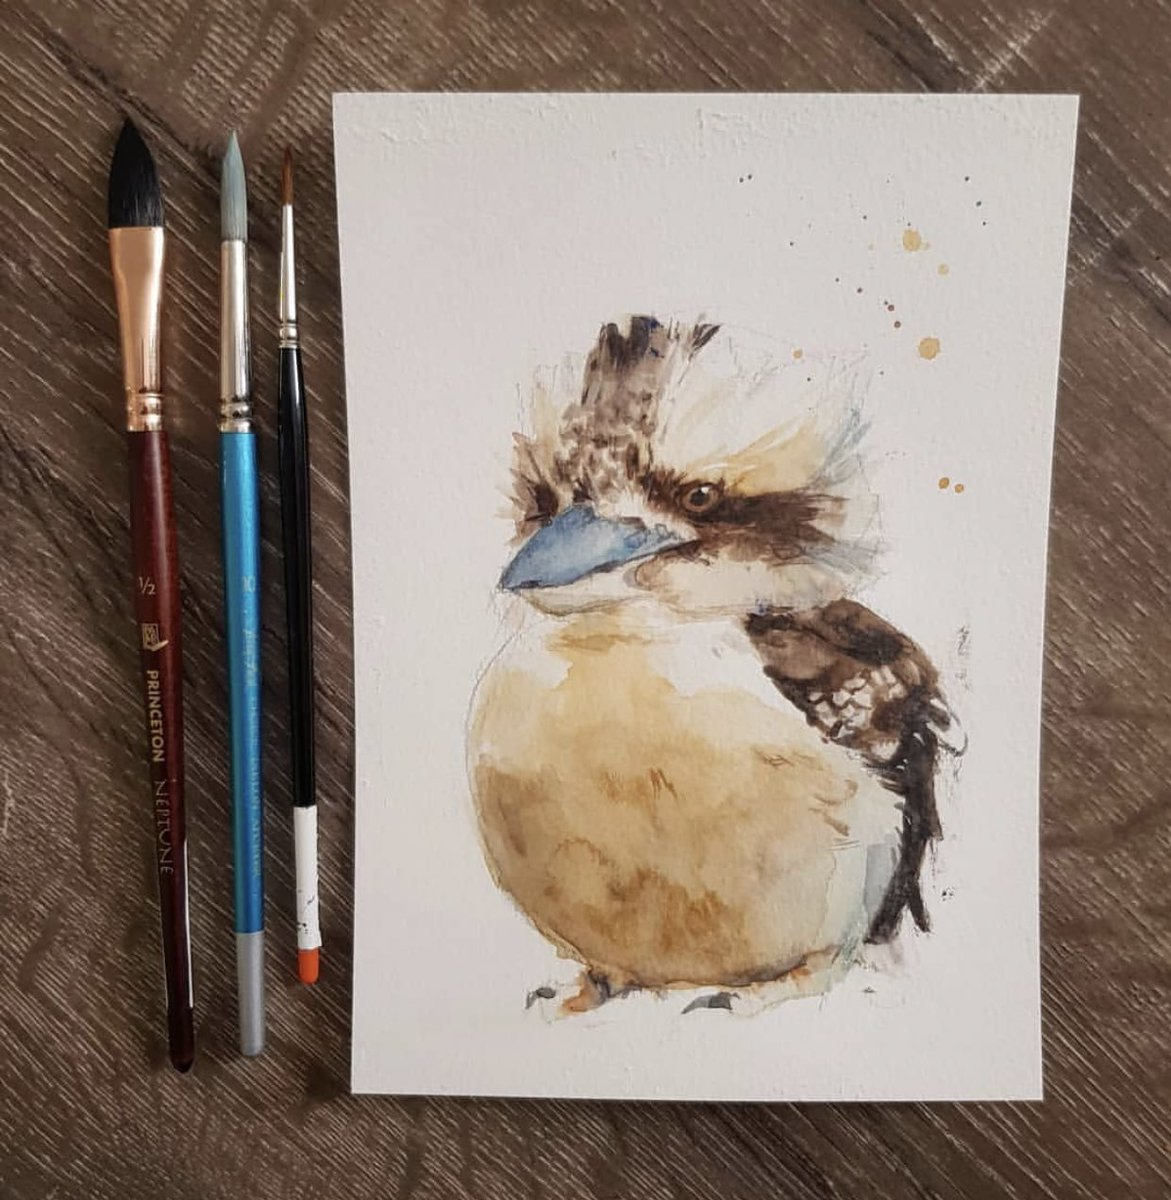 #tbt to this old kookaburra piece #watercolor #watercolour #australianartist #throwback